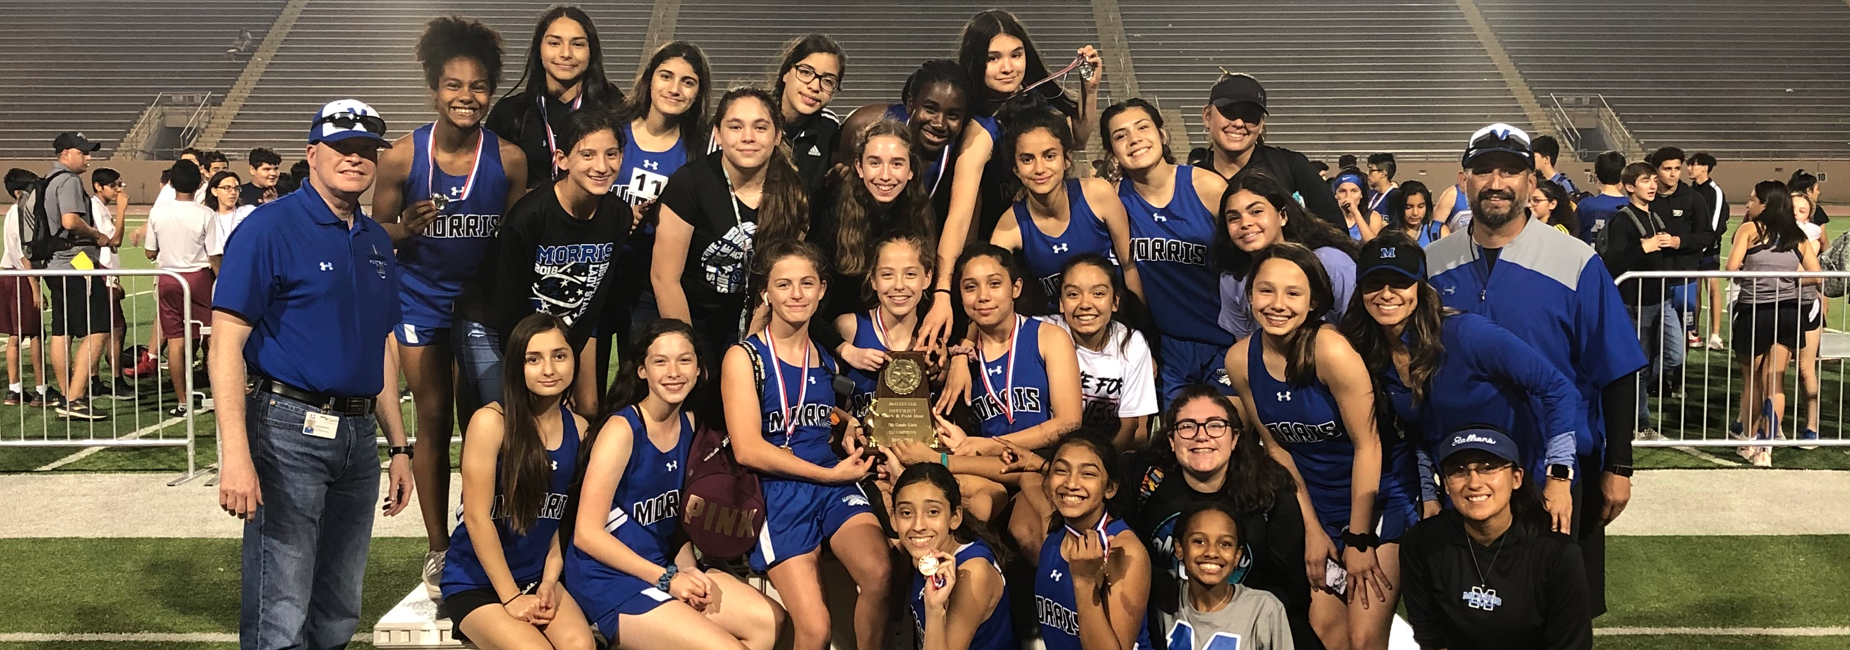 7th Girls Track - District Champions